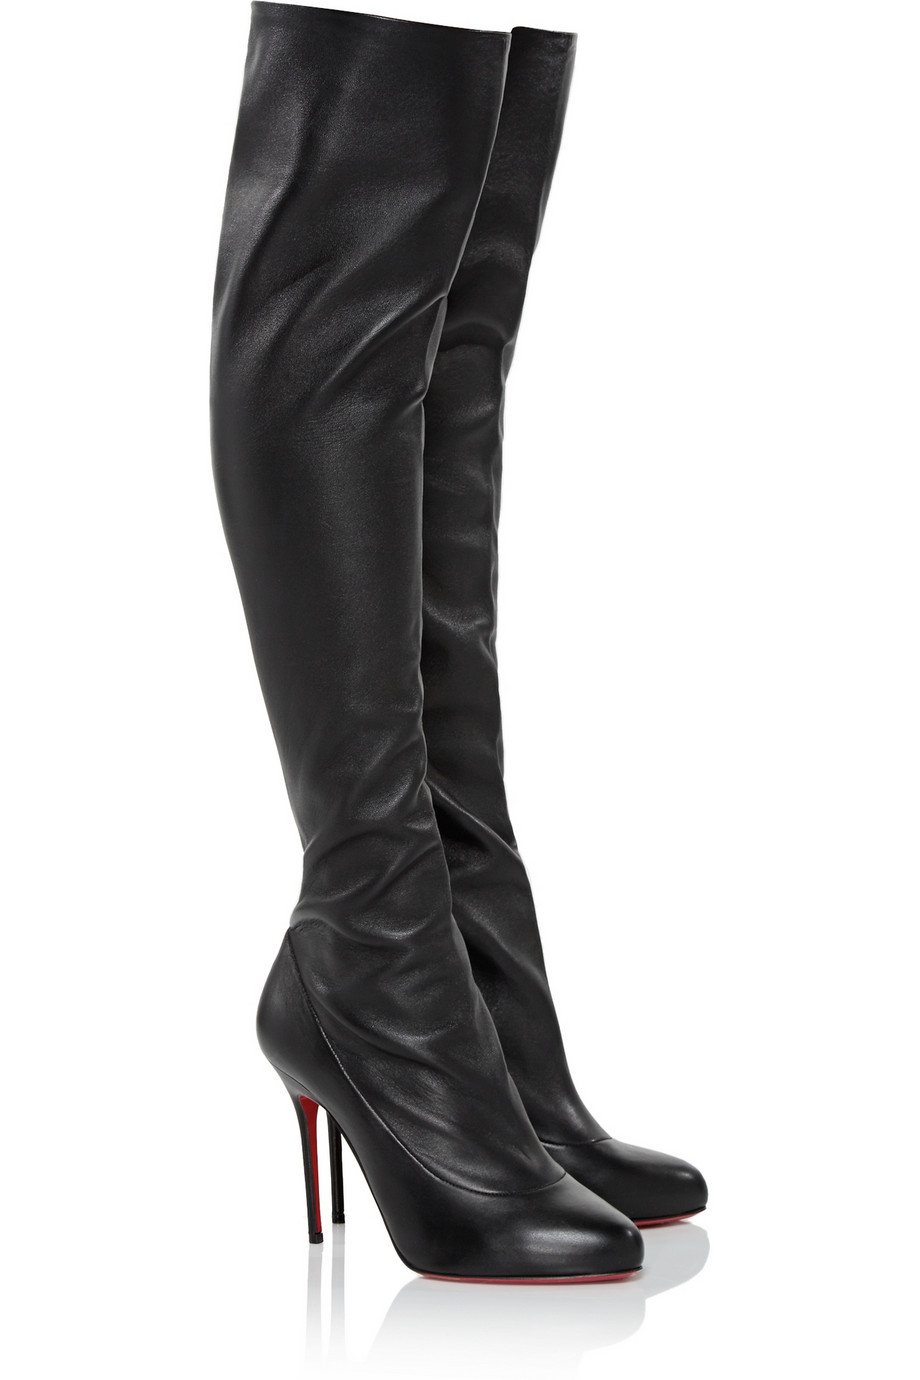 540a7a0b6fa Lyst - Christian Louboutin Sempre Monica 100 Leather Over-The-Knee ...